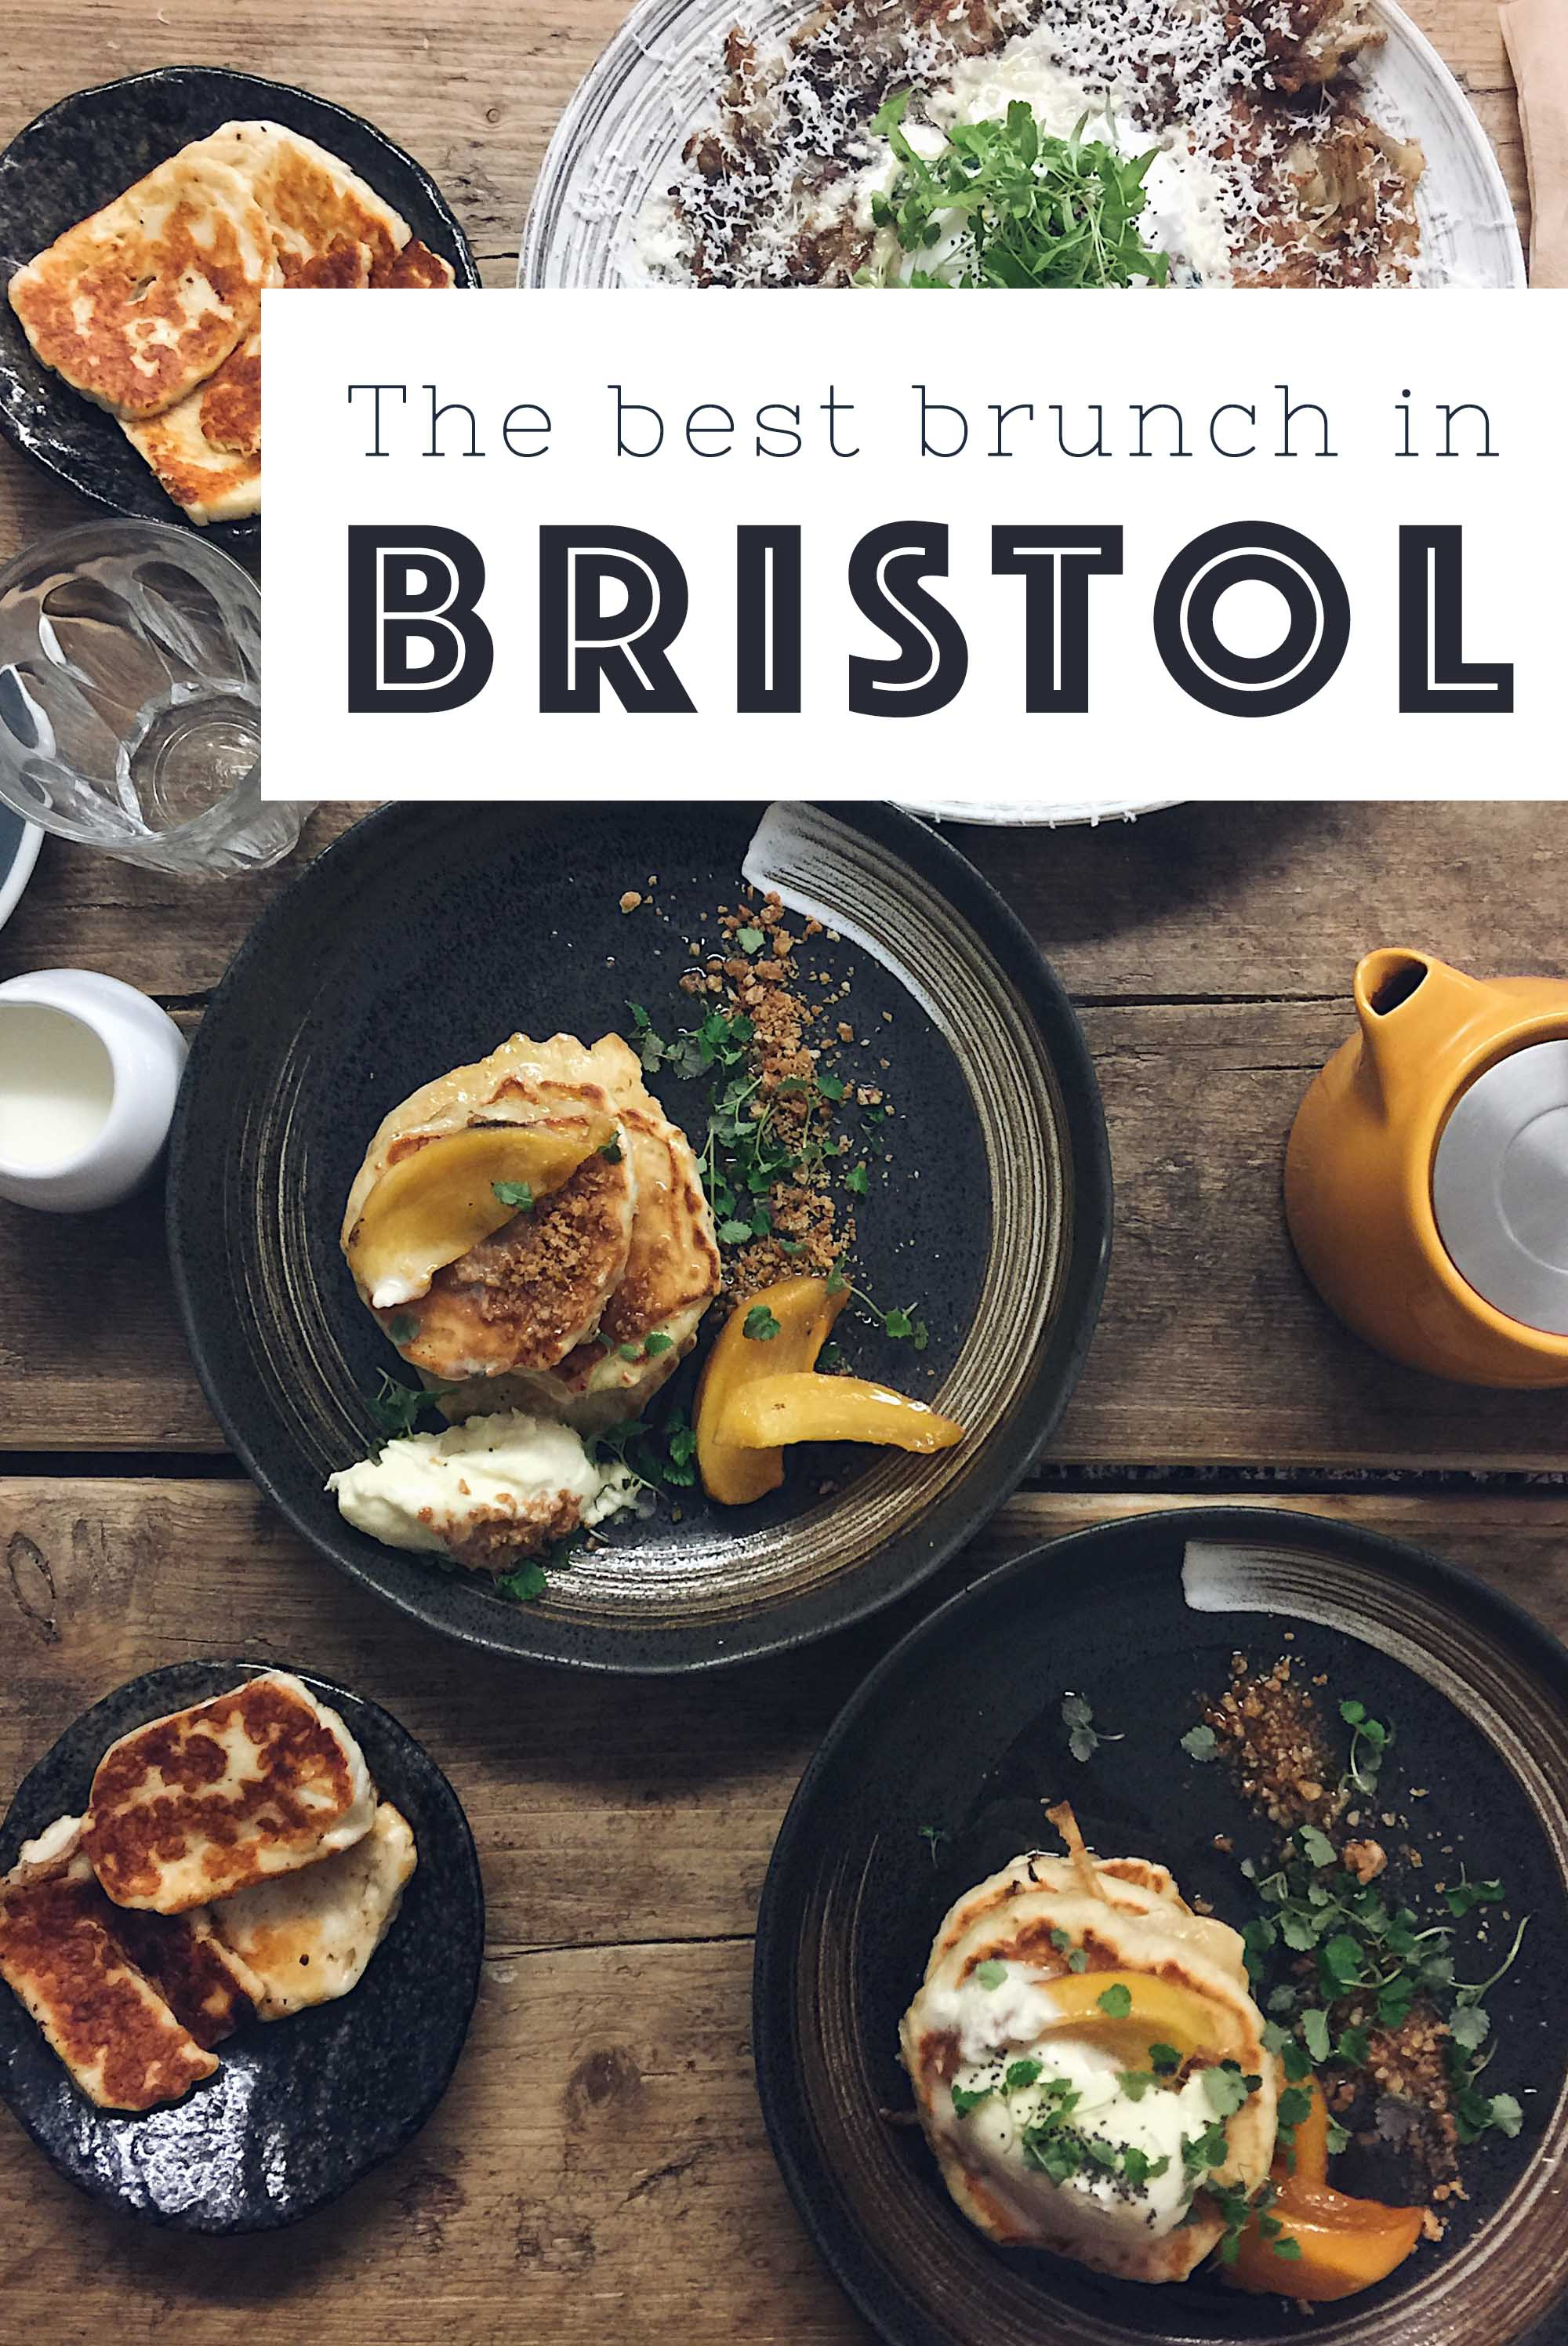 Best brunch in Bristol